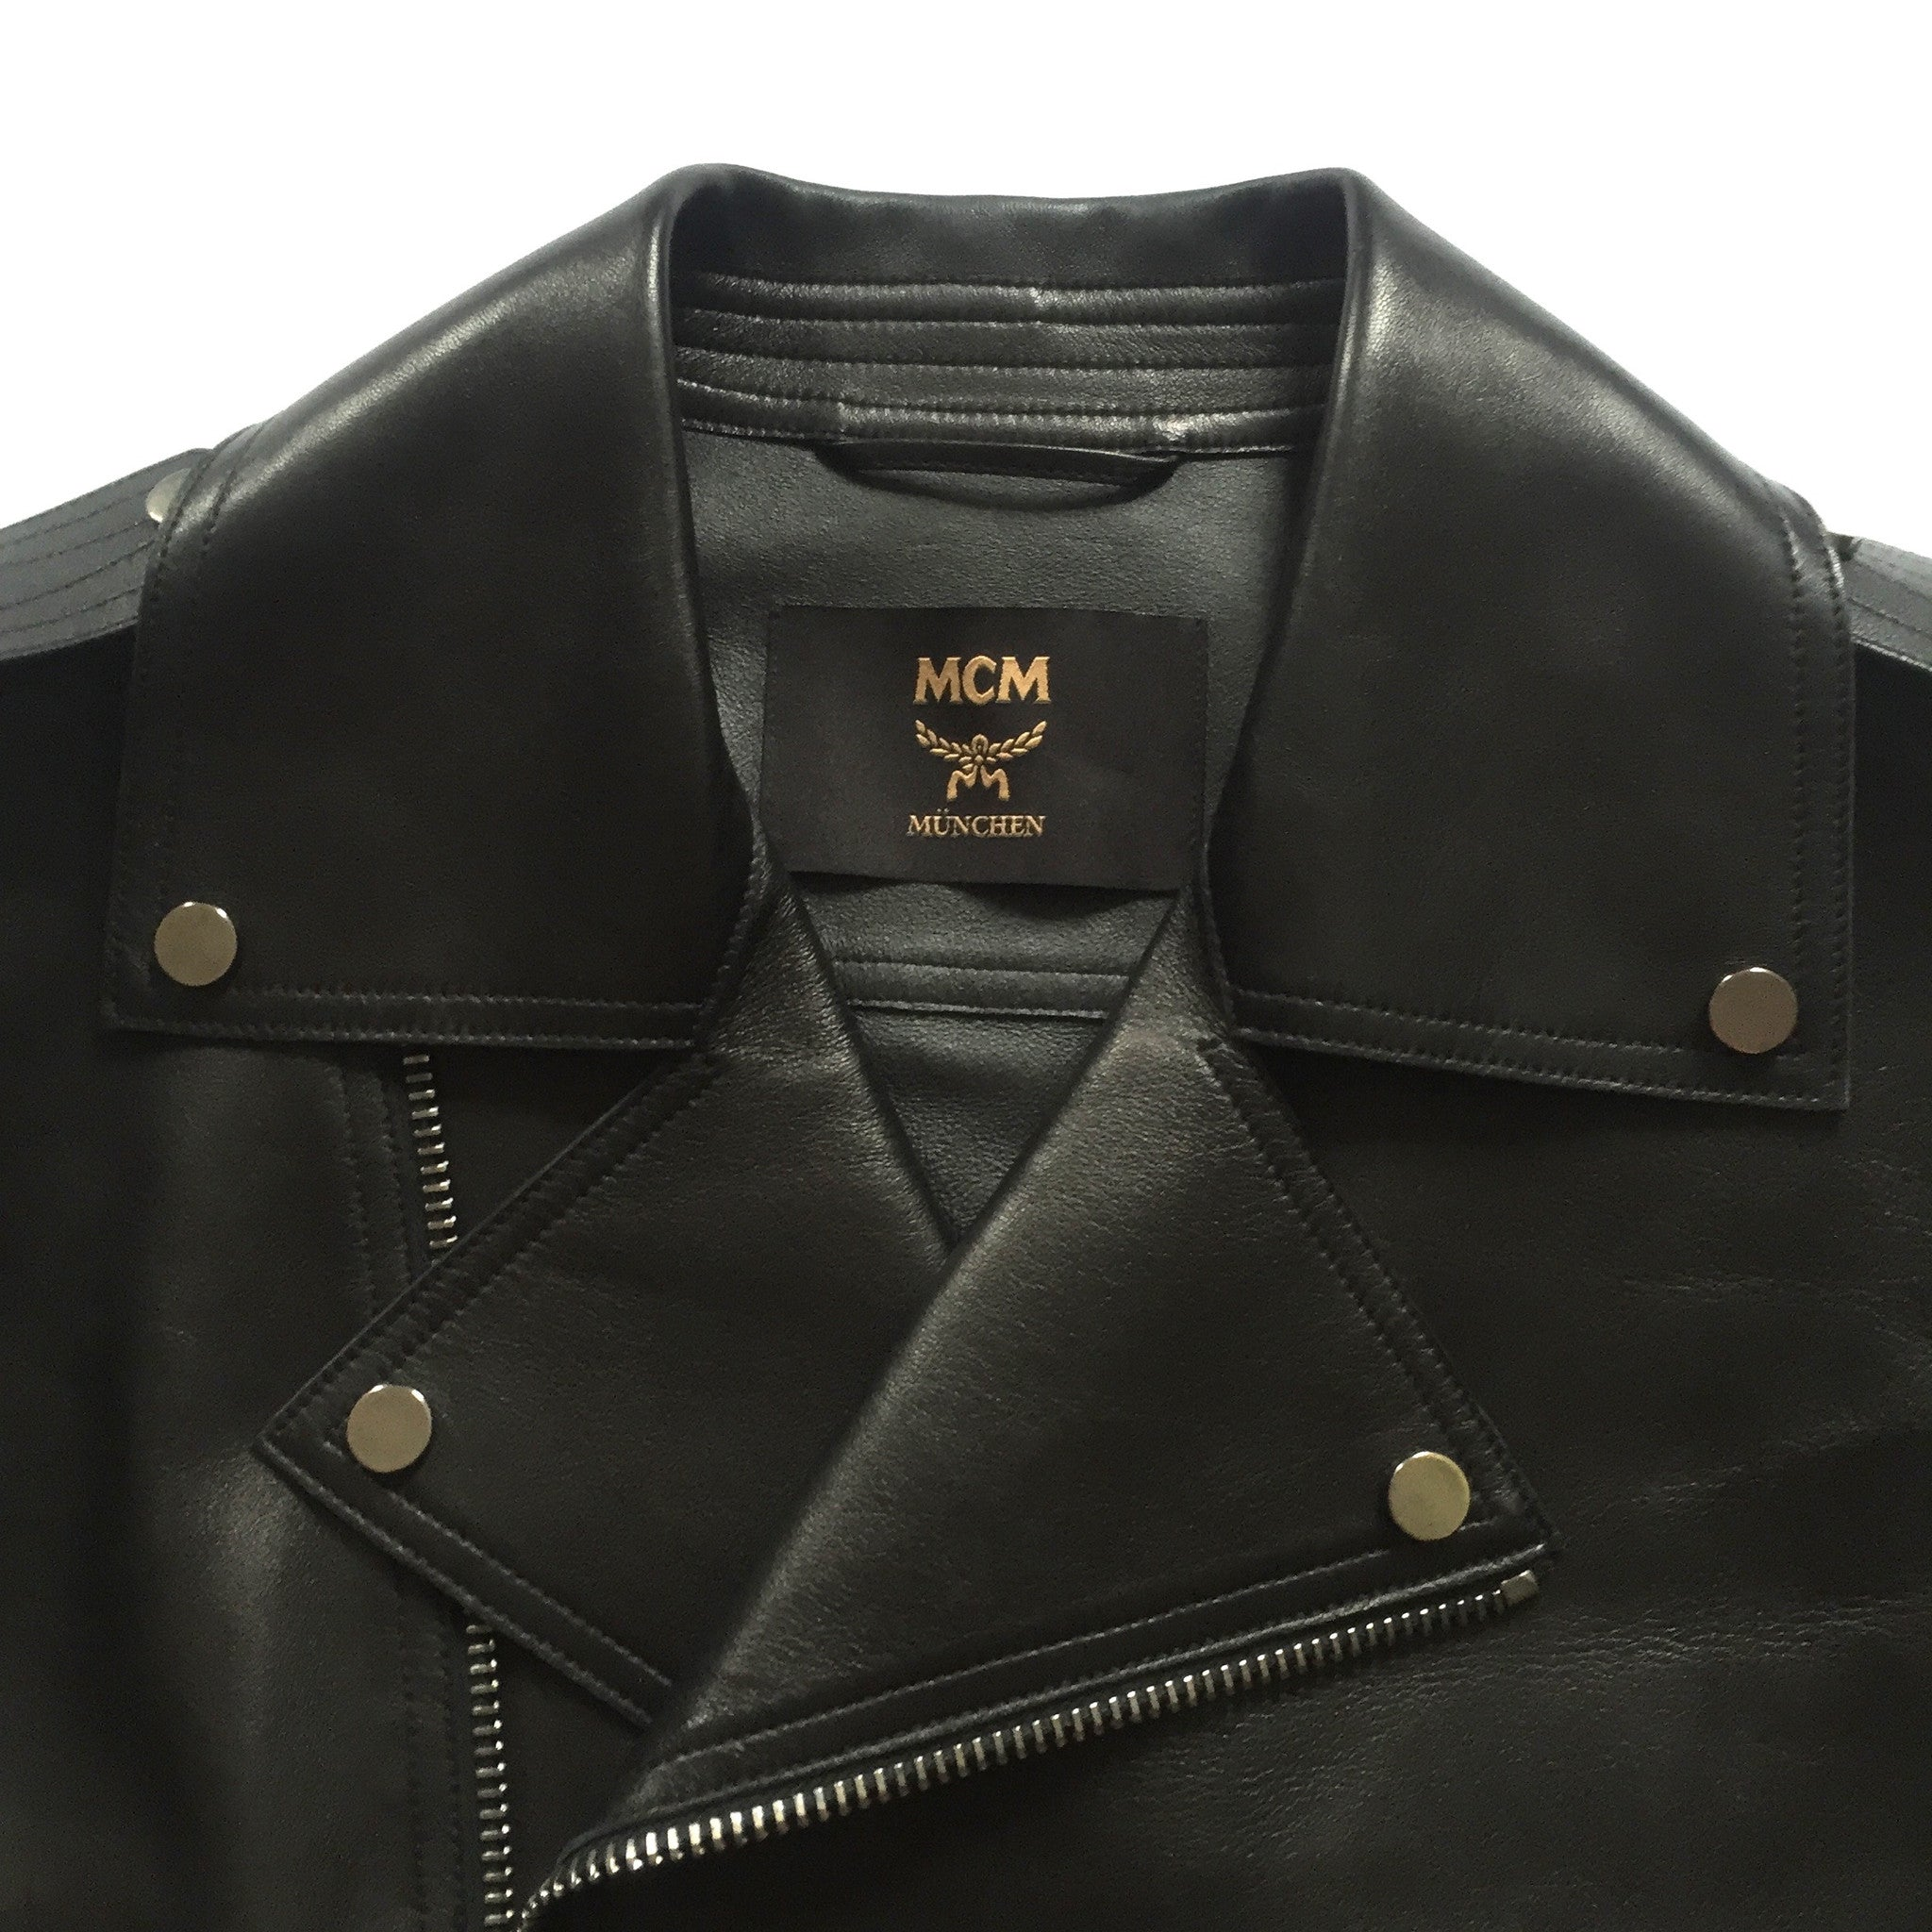 MCM - Black Leather Biker Jacket